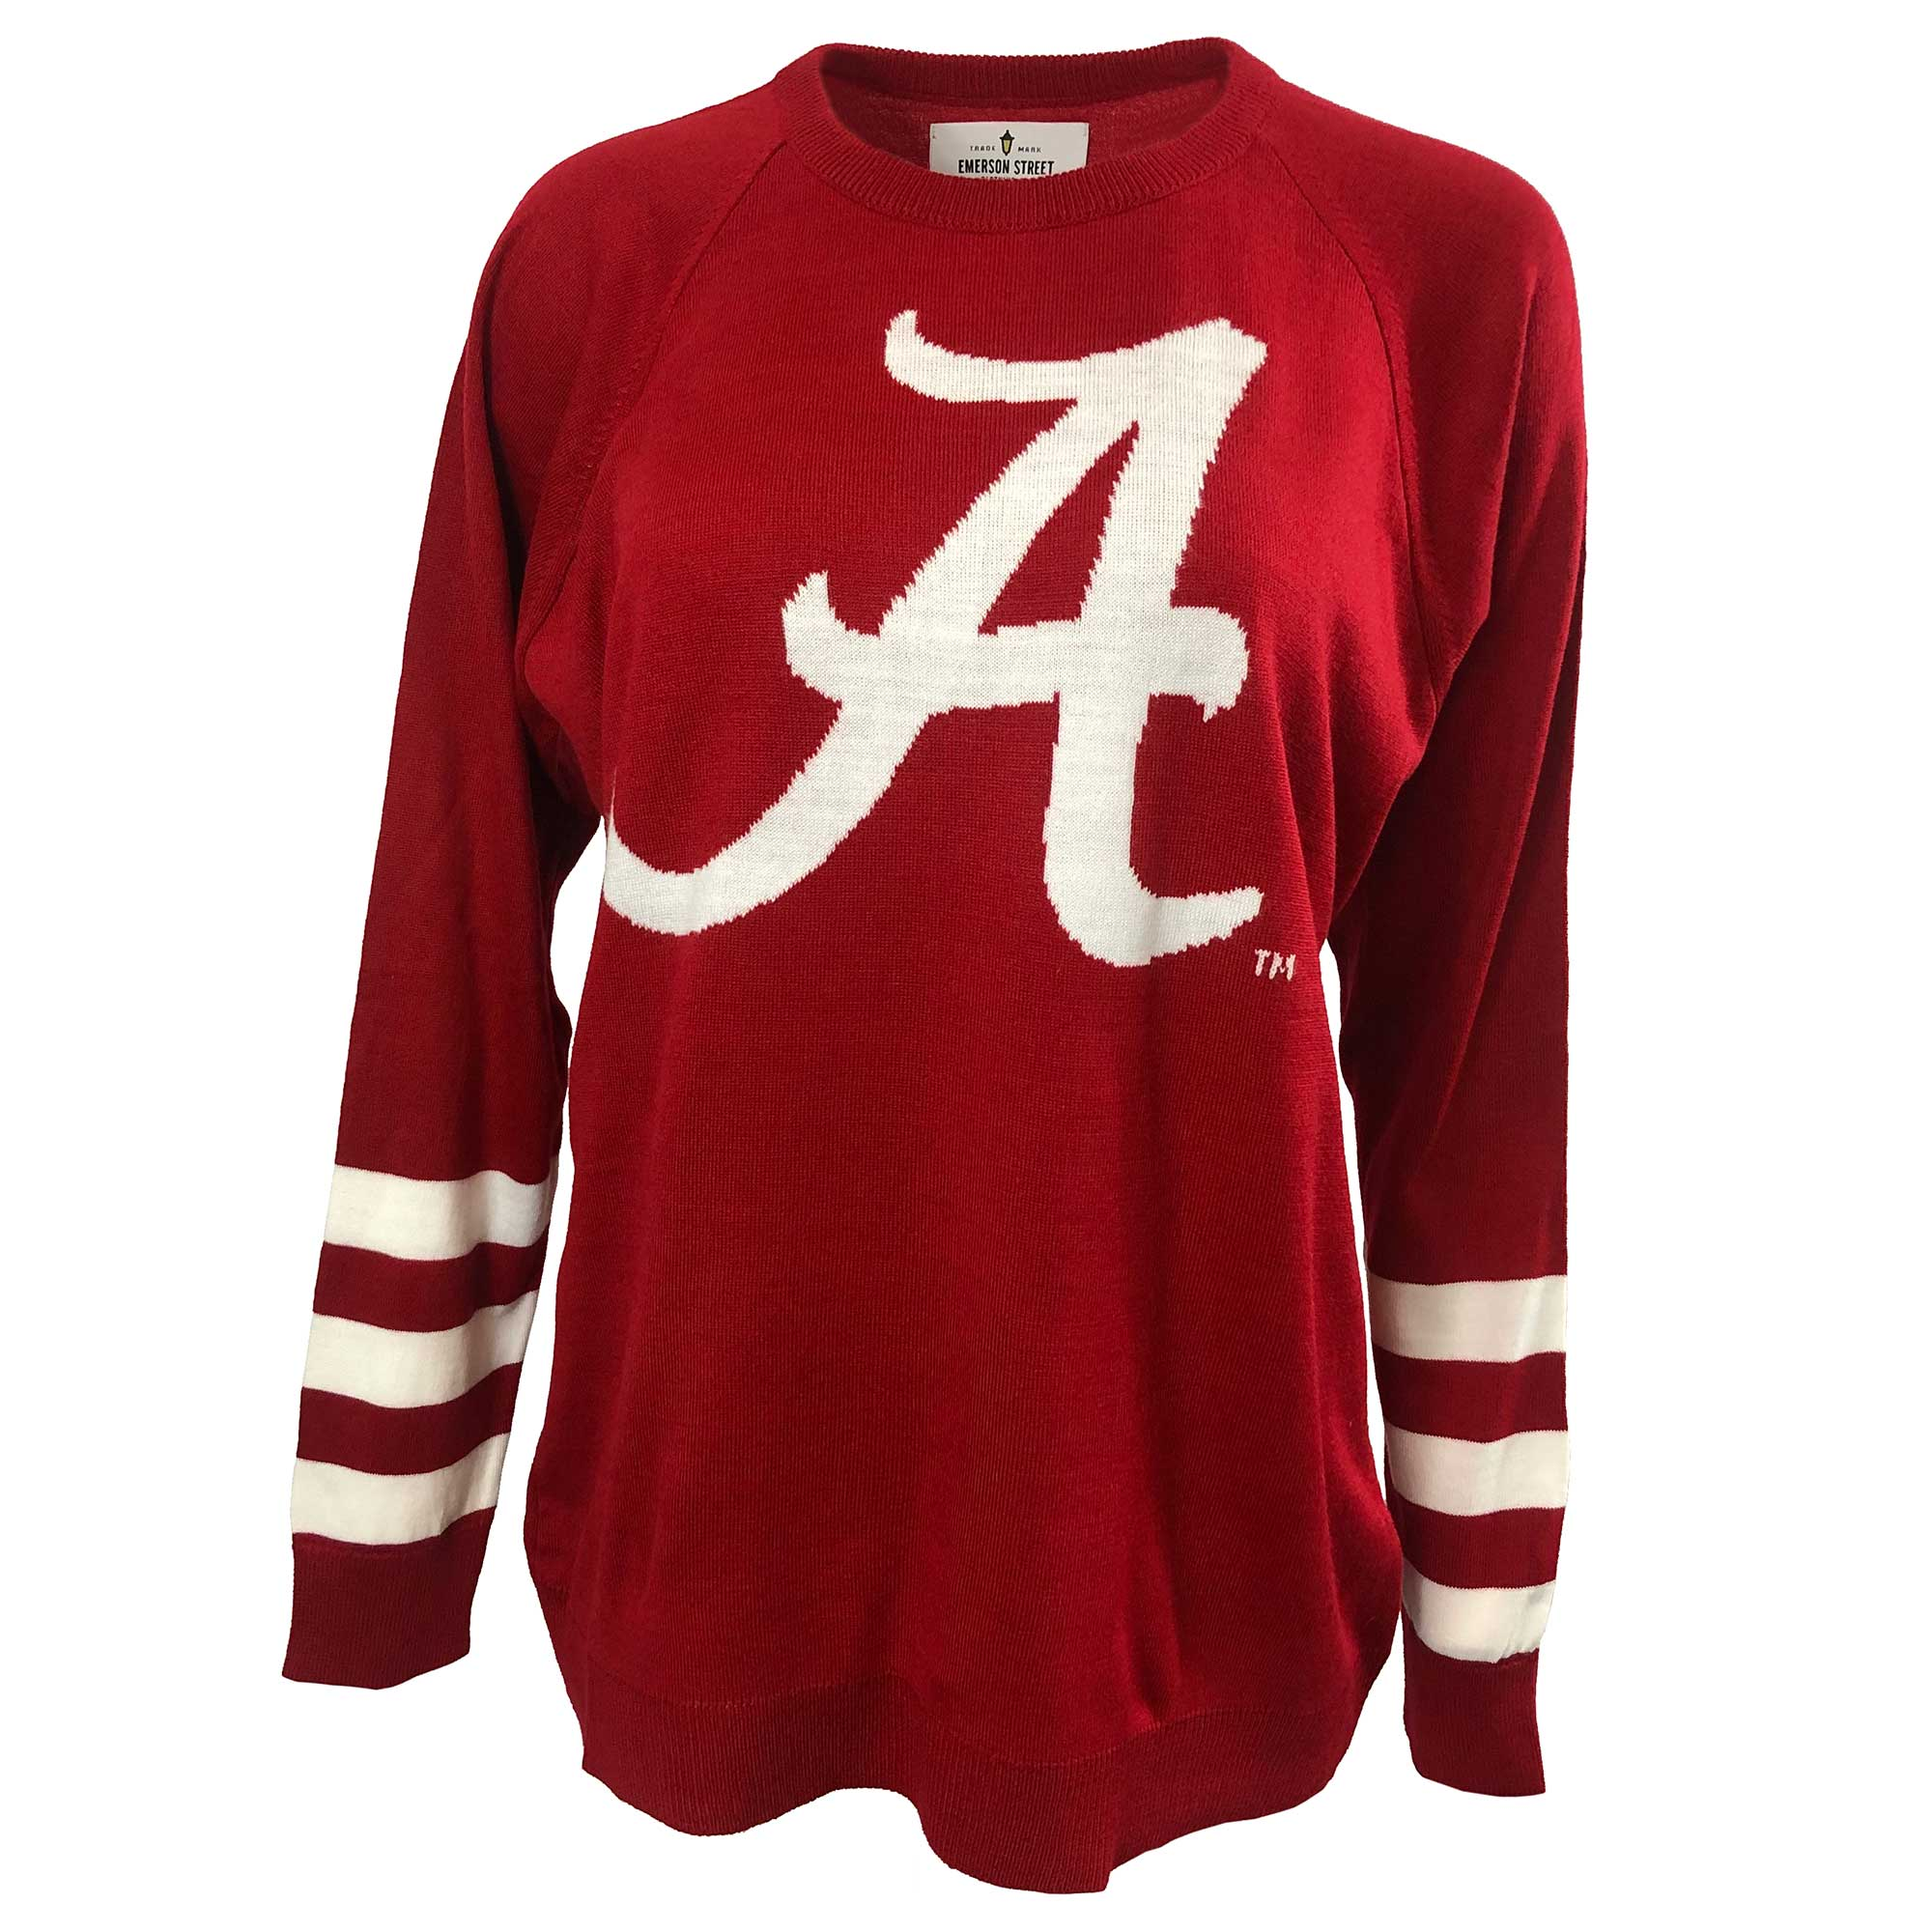 Allabama Roll Tide Logo Sweater